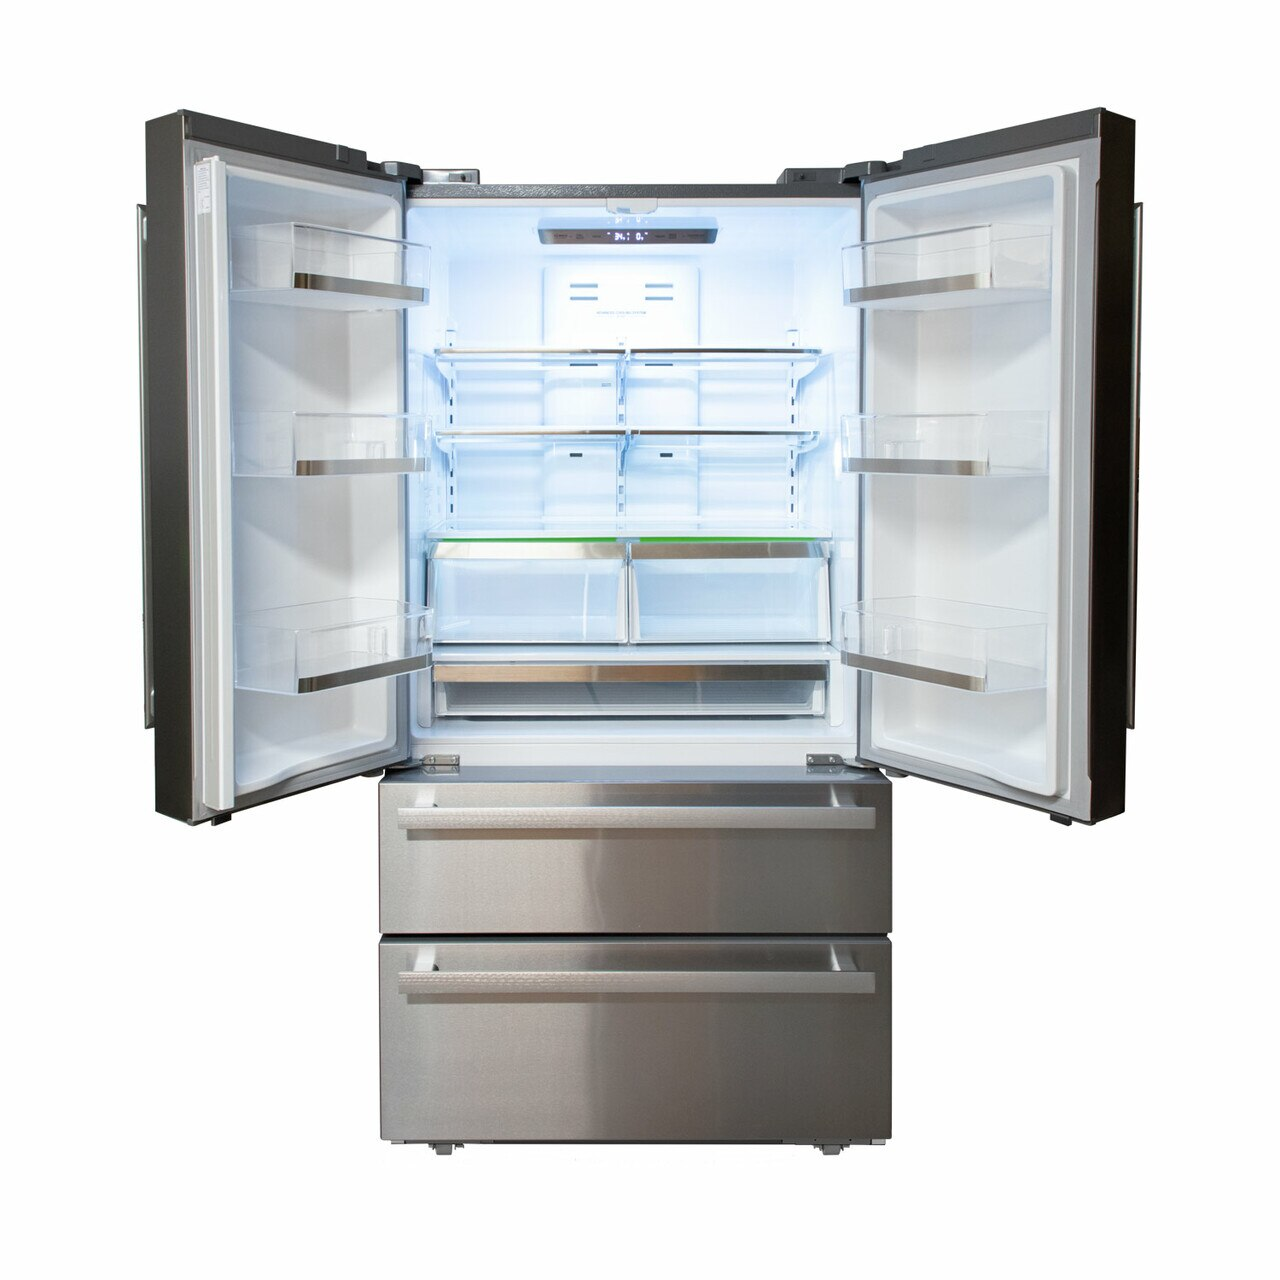 Sharp French 4-Door Refrigerator (SJG2351FS) – view with doors open